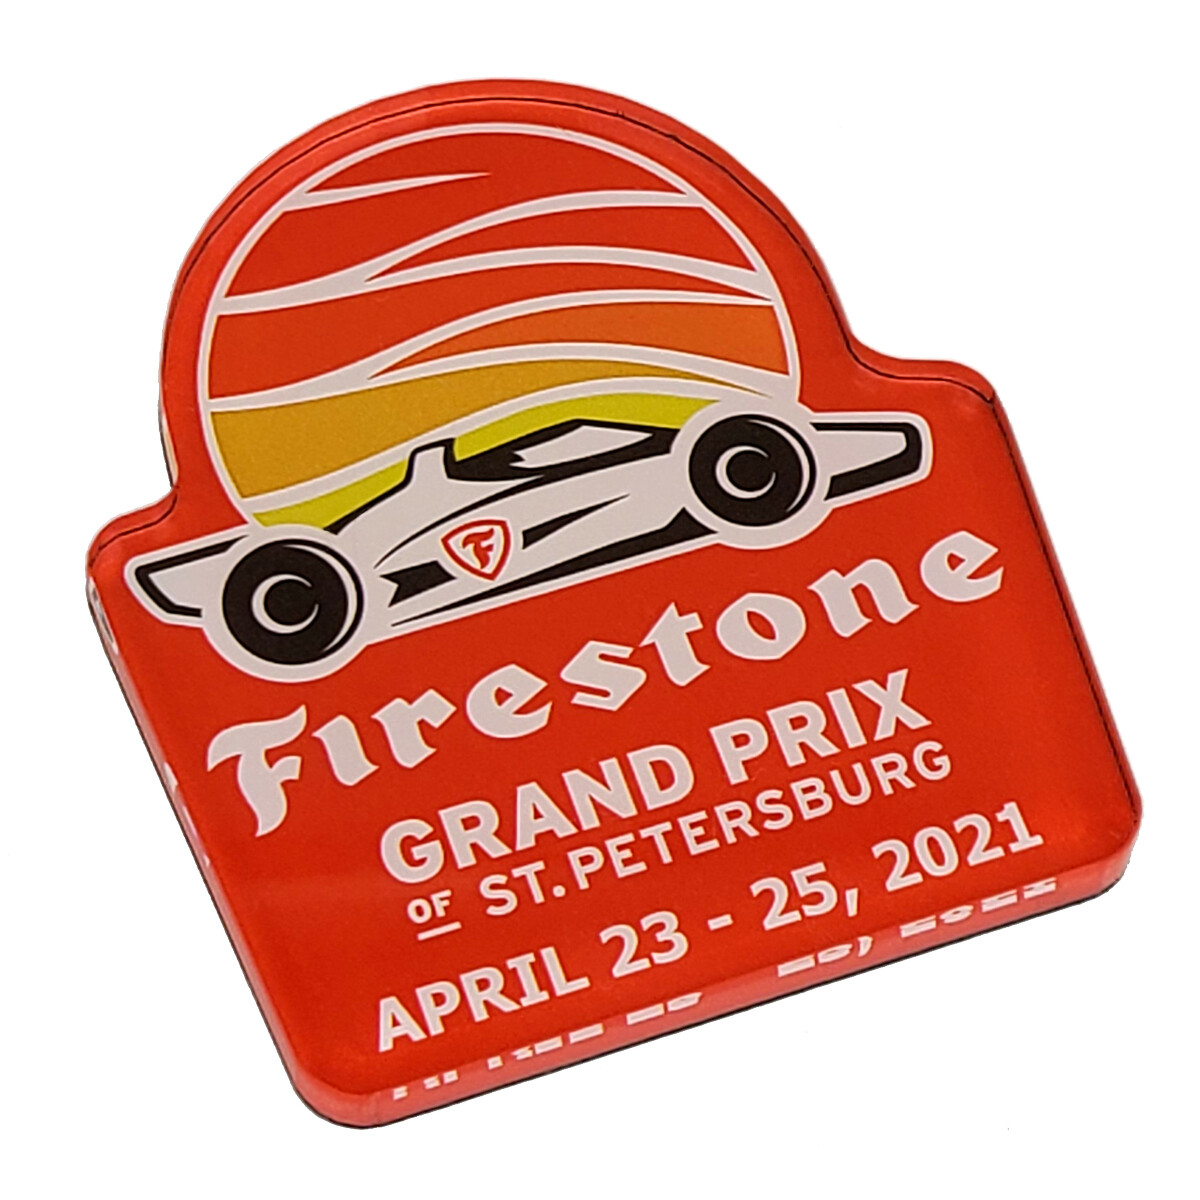 Firedstone magnet of St. Pete